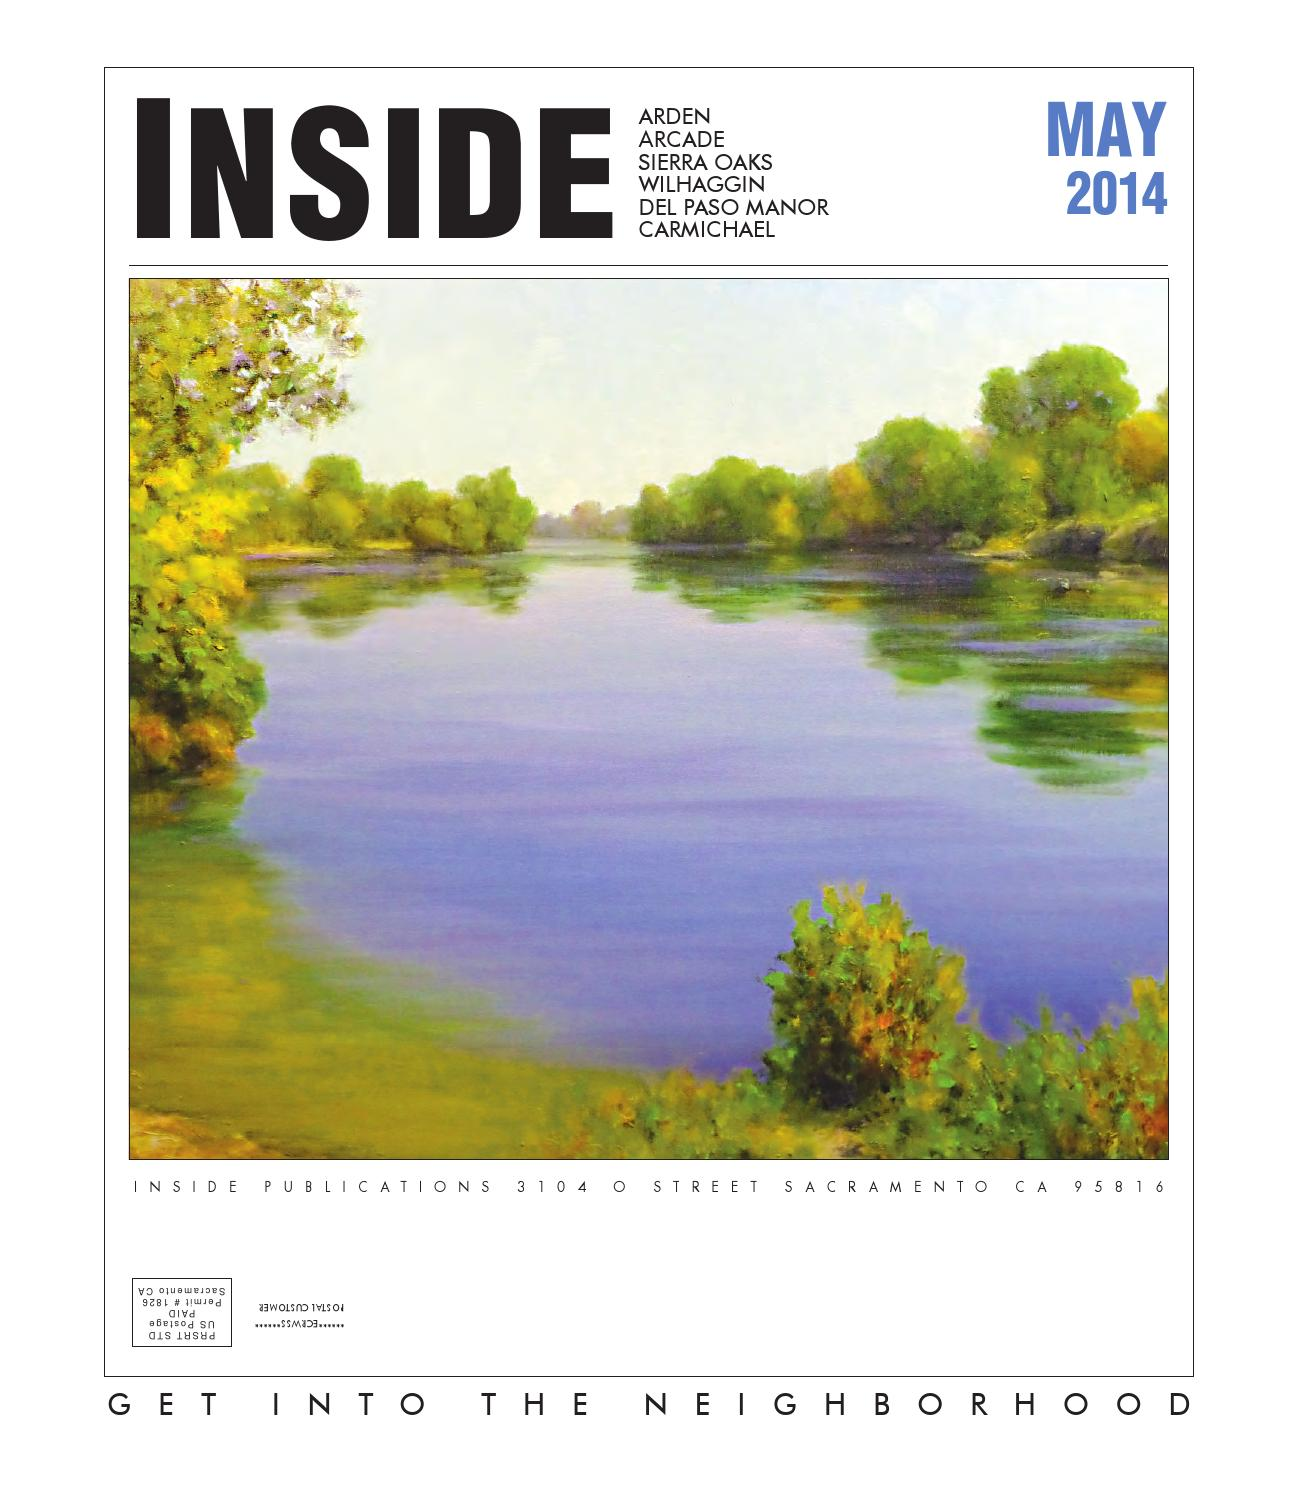 Inside arden may 14 by Inside Publications issuu